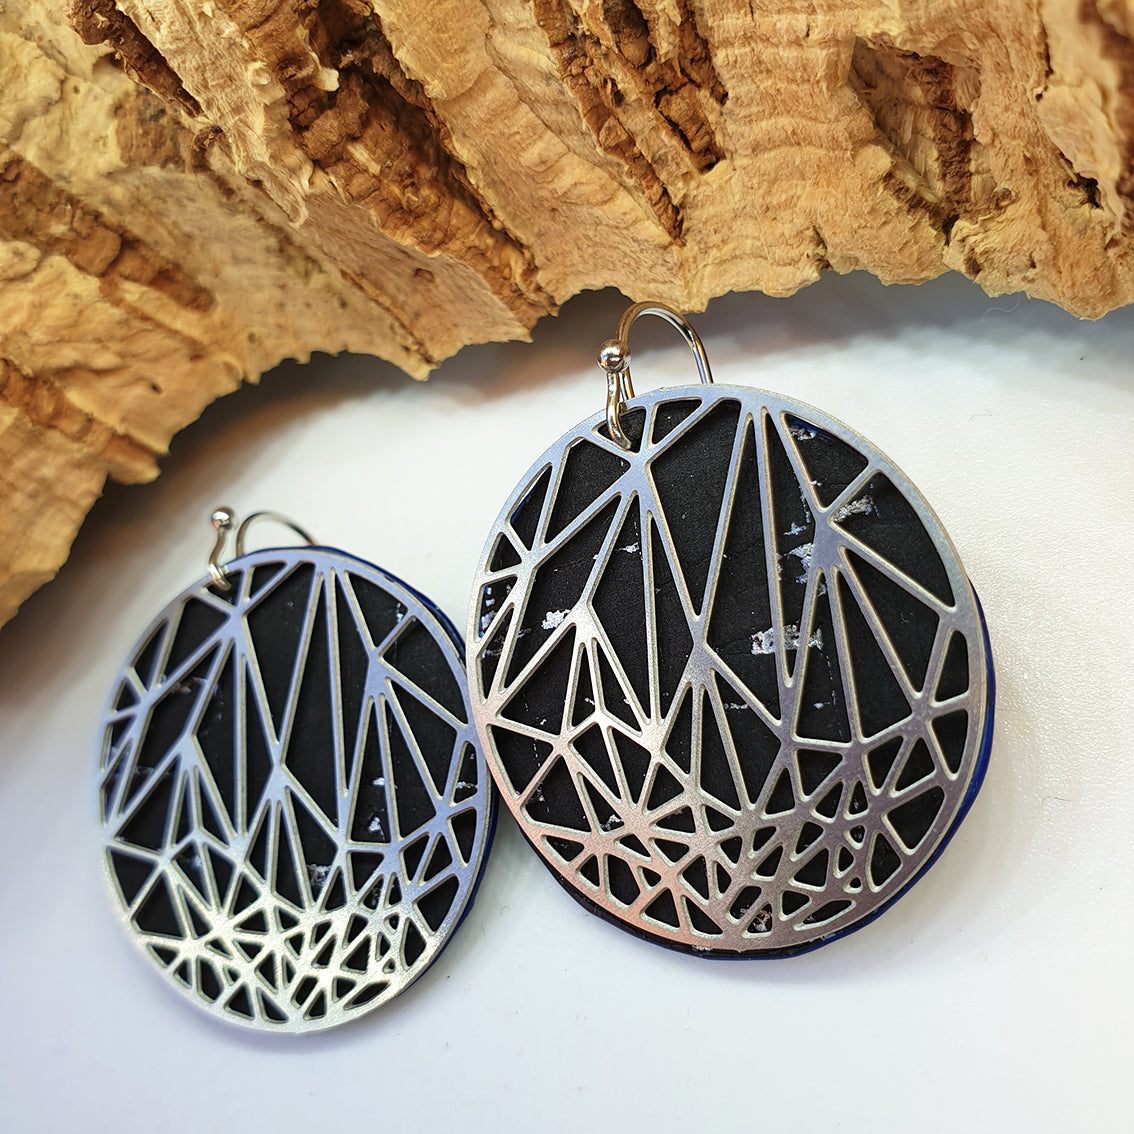 Fabrikk Stellar Laser Cut Earrings | Black Silver | Vegan Leather